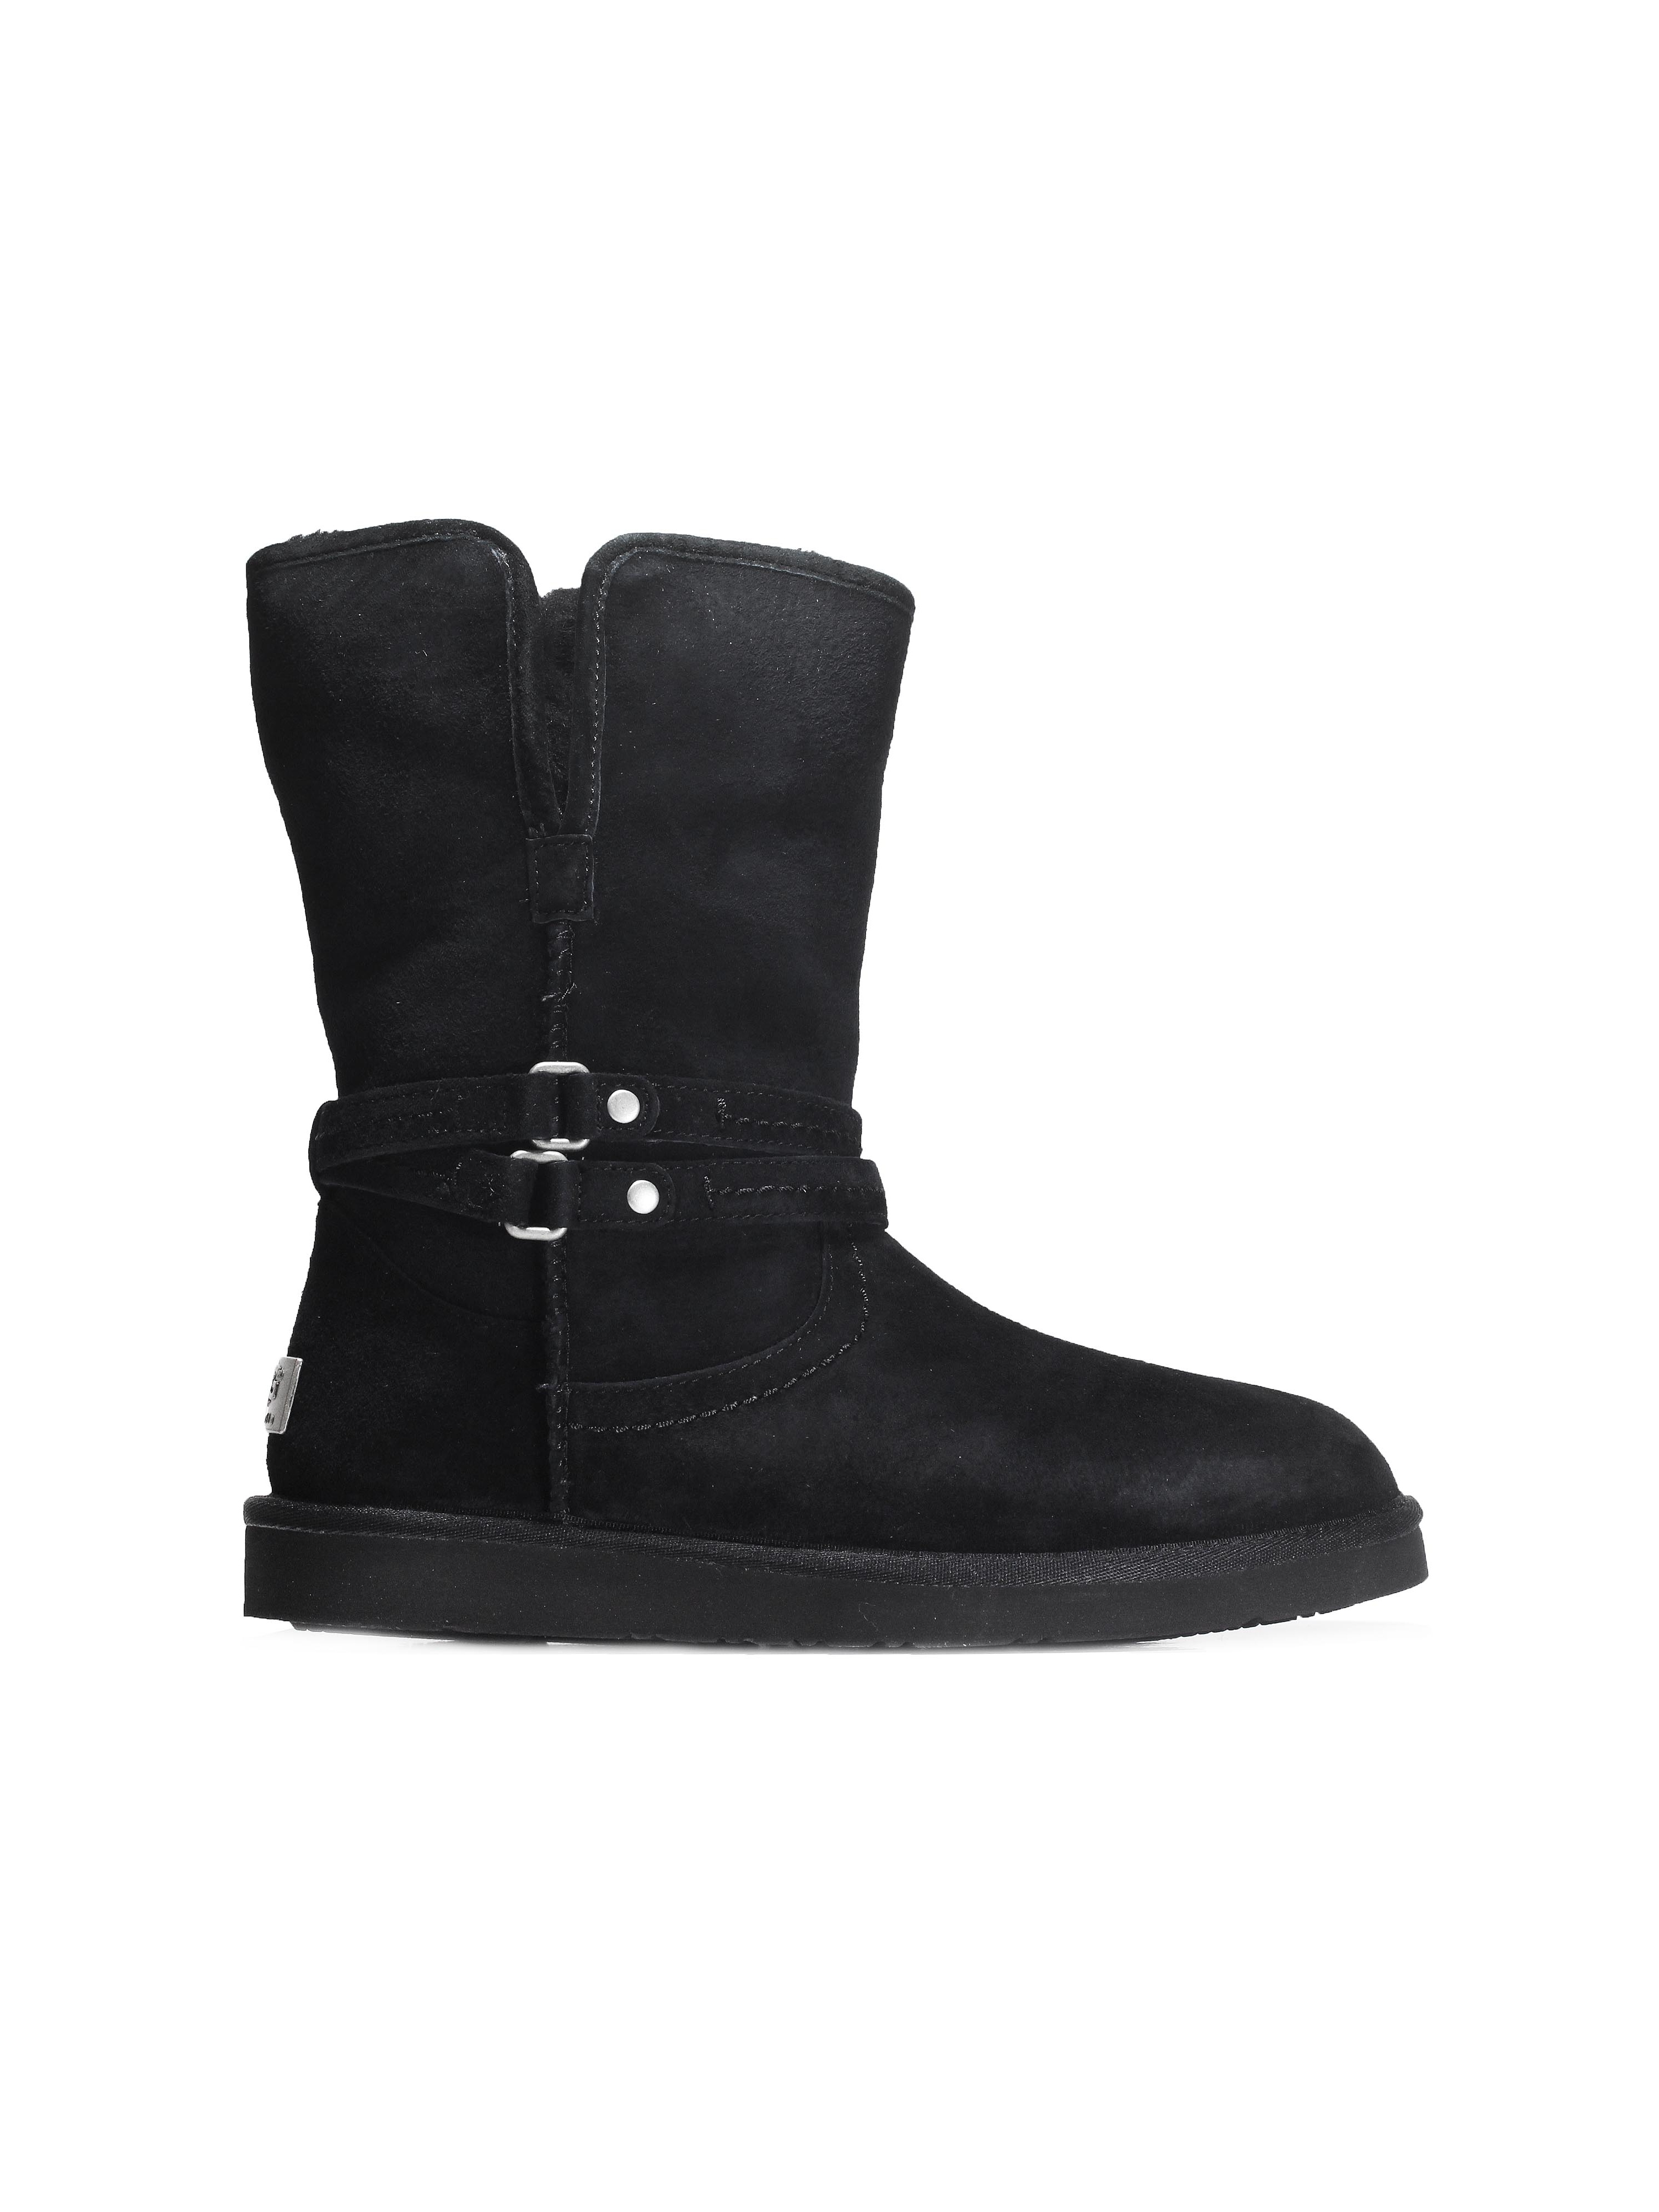 b67a076d9dc low price cheap ugg boots size 10 2bc18 3902e